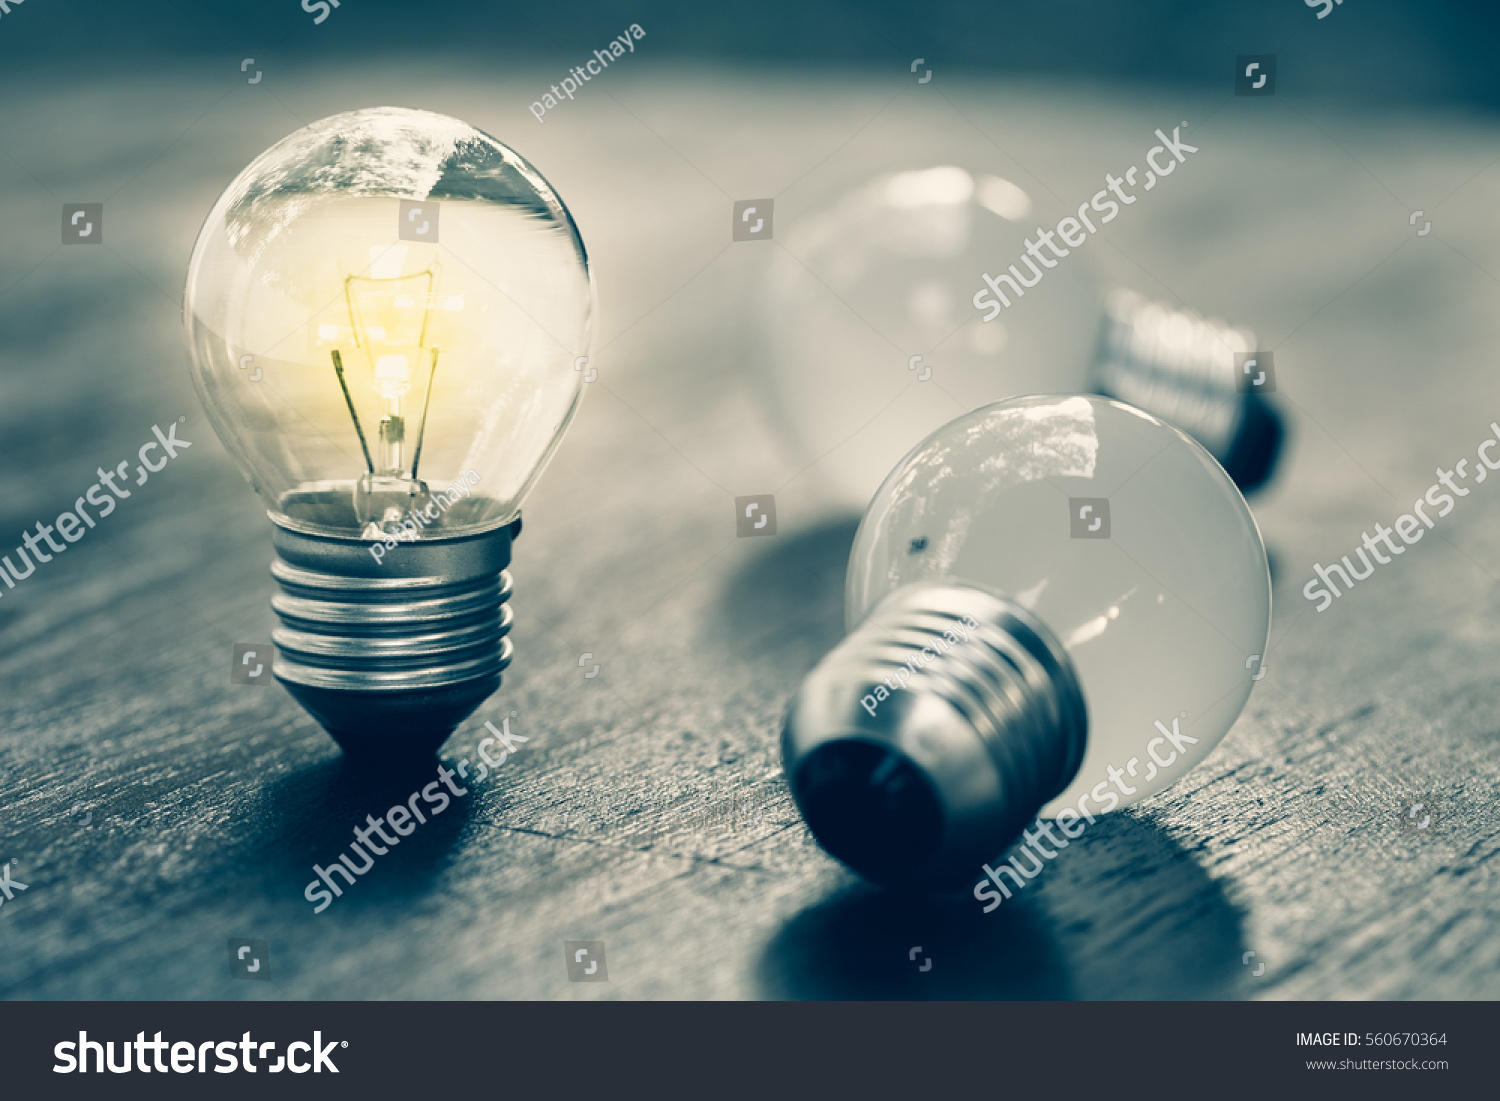 Small light bulb standing and glowing #560670364